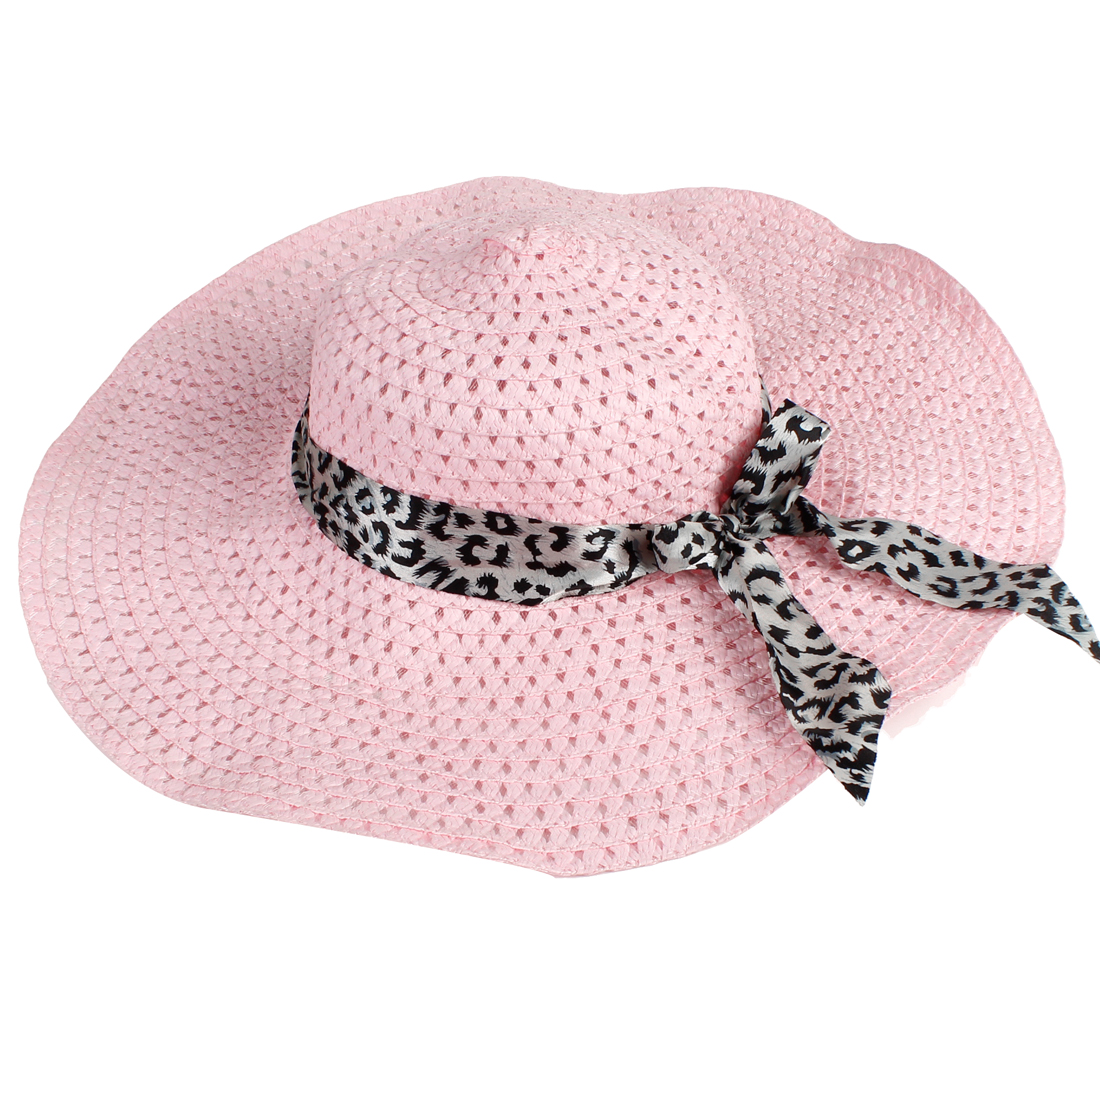 Black Self Tie Bow Wide Brim Hollow Out Design Pink Beach Sun Hat for Lady